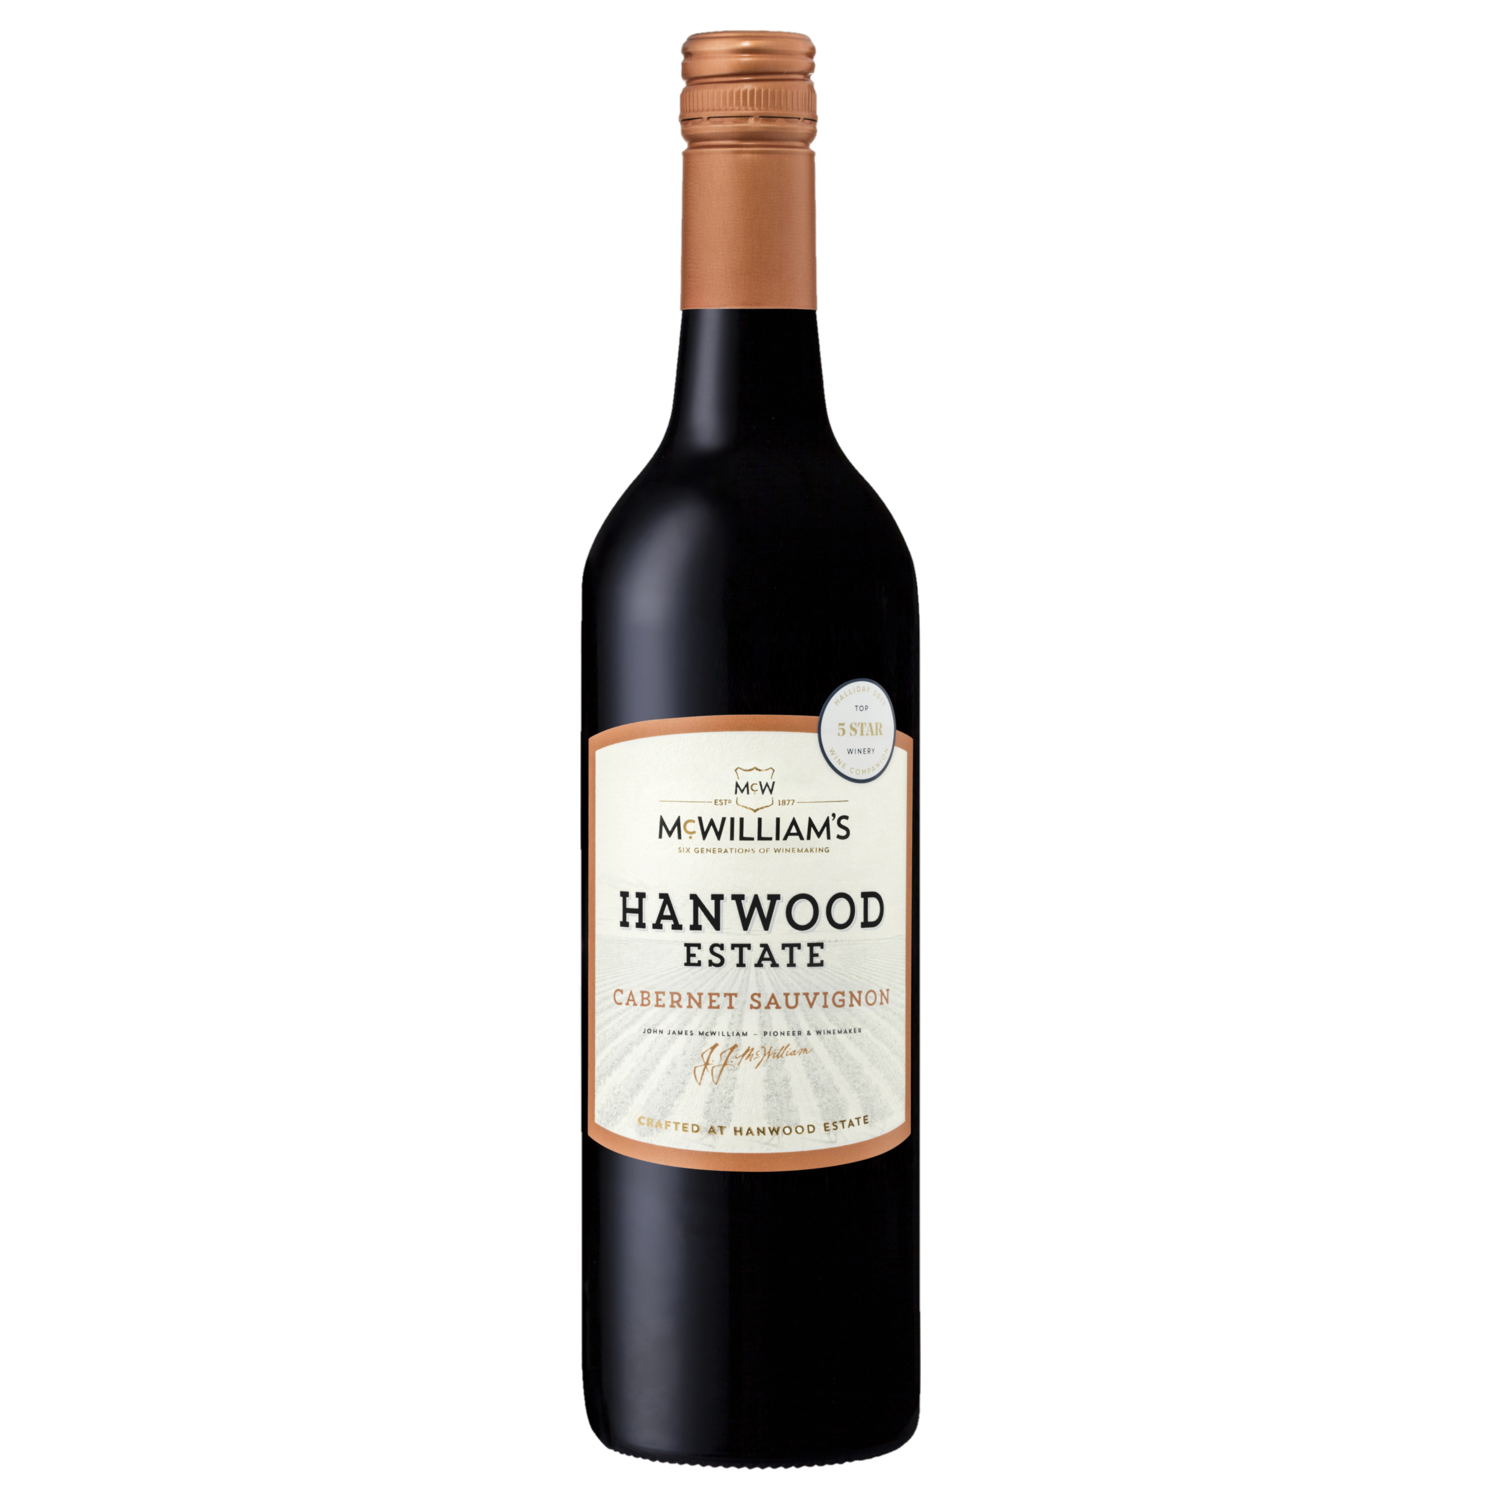 McWilliam's Hanwood Estate Cabernet Sauvignon